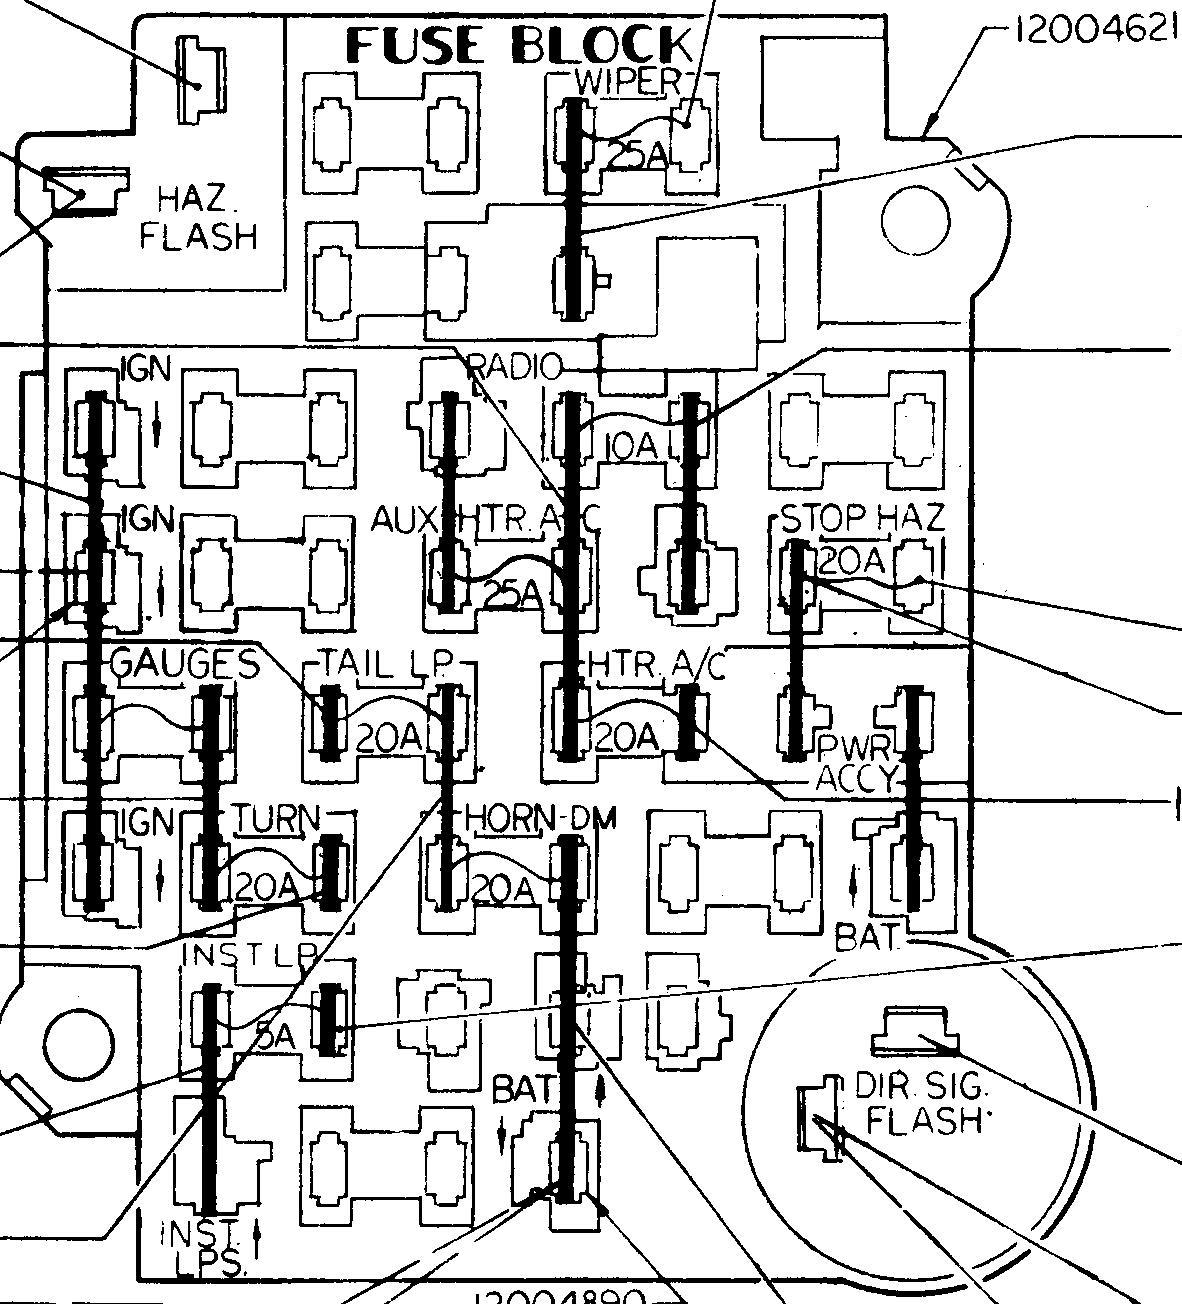 hight resolution of 85 camaro fuse panel diagram wiring diagram third level 2010 camaro fuse box diagram 85 camaro fuse box